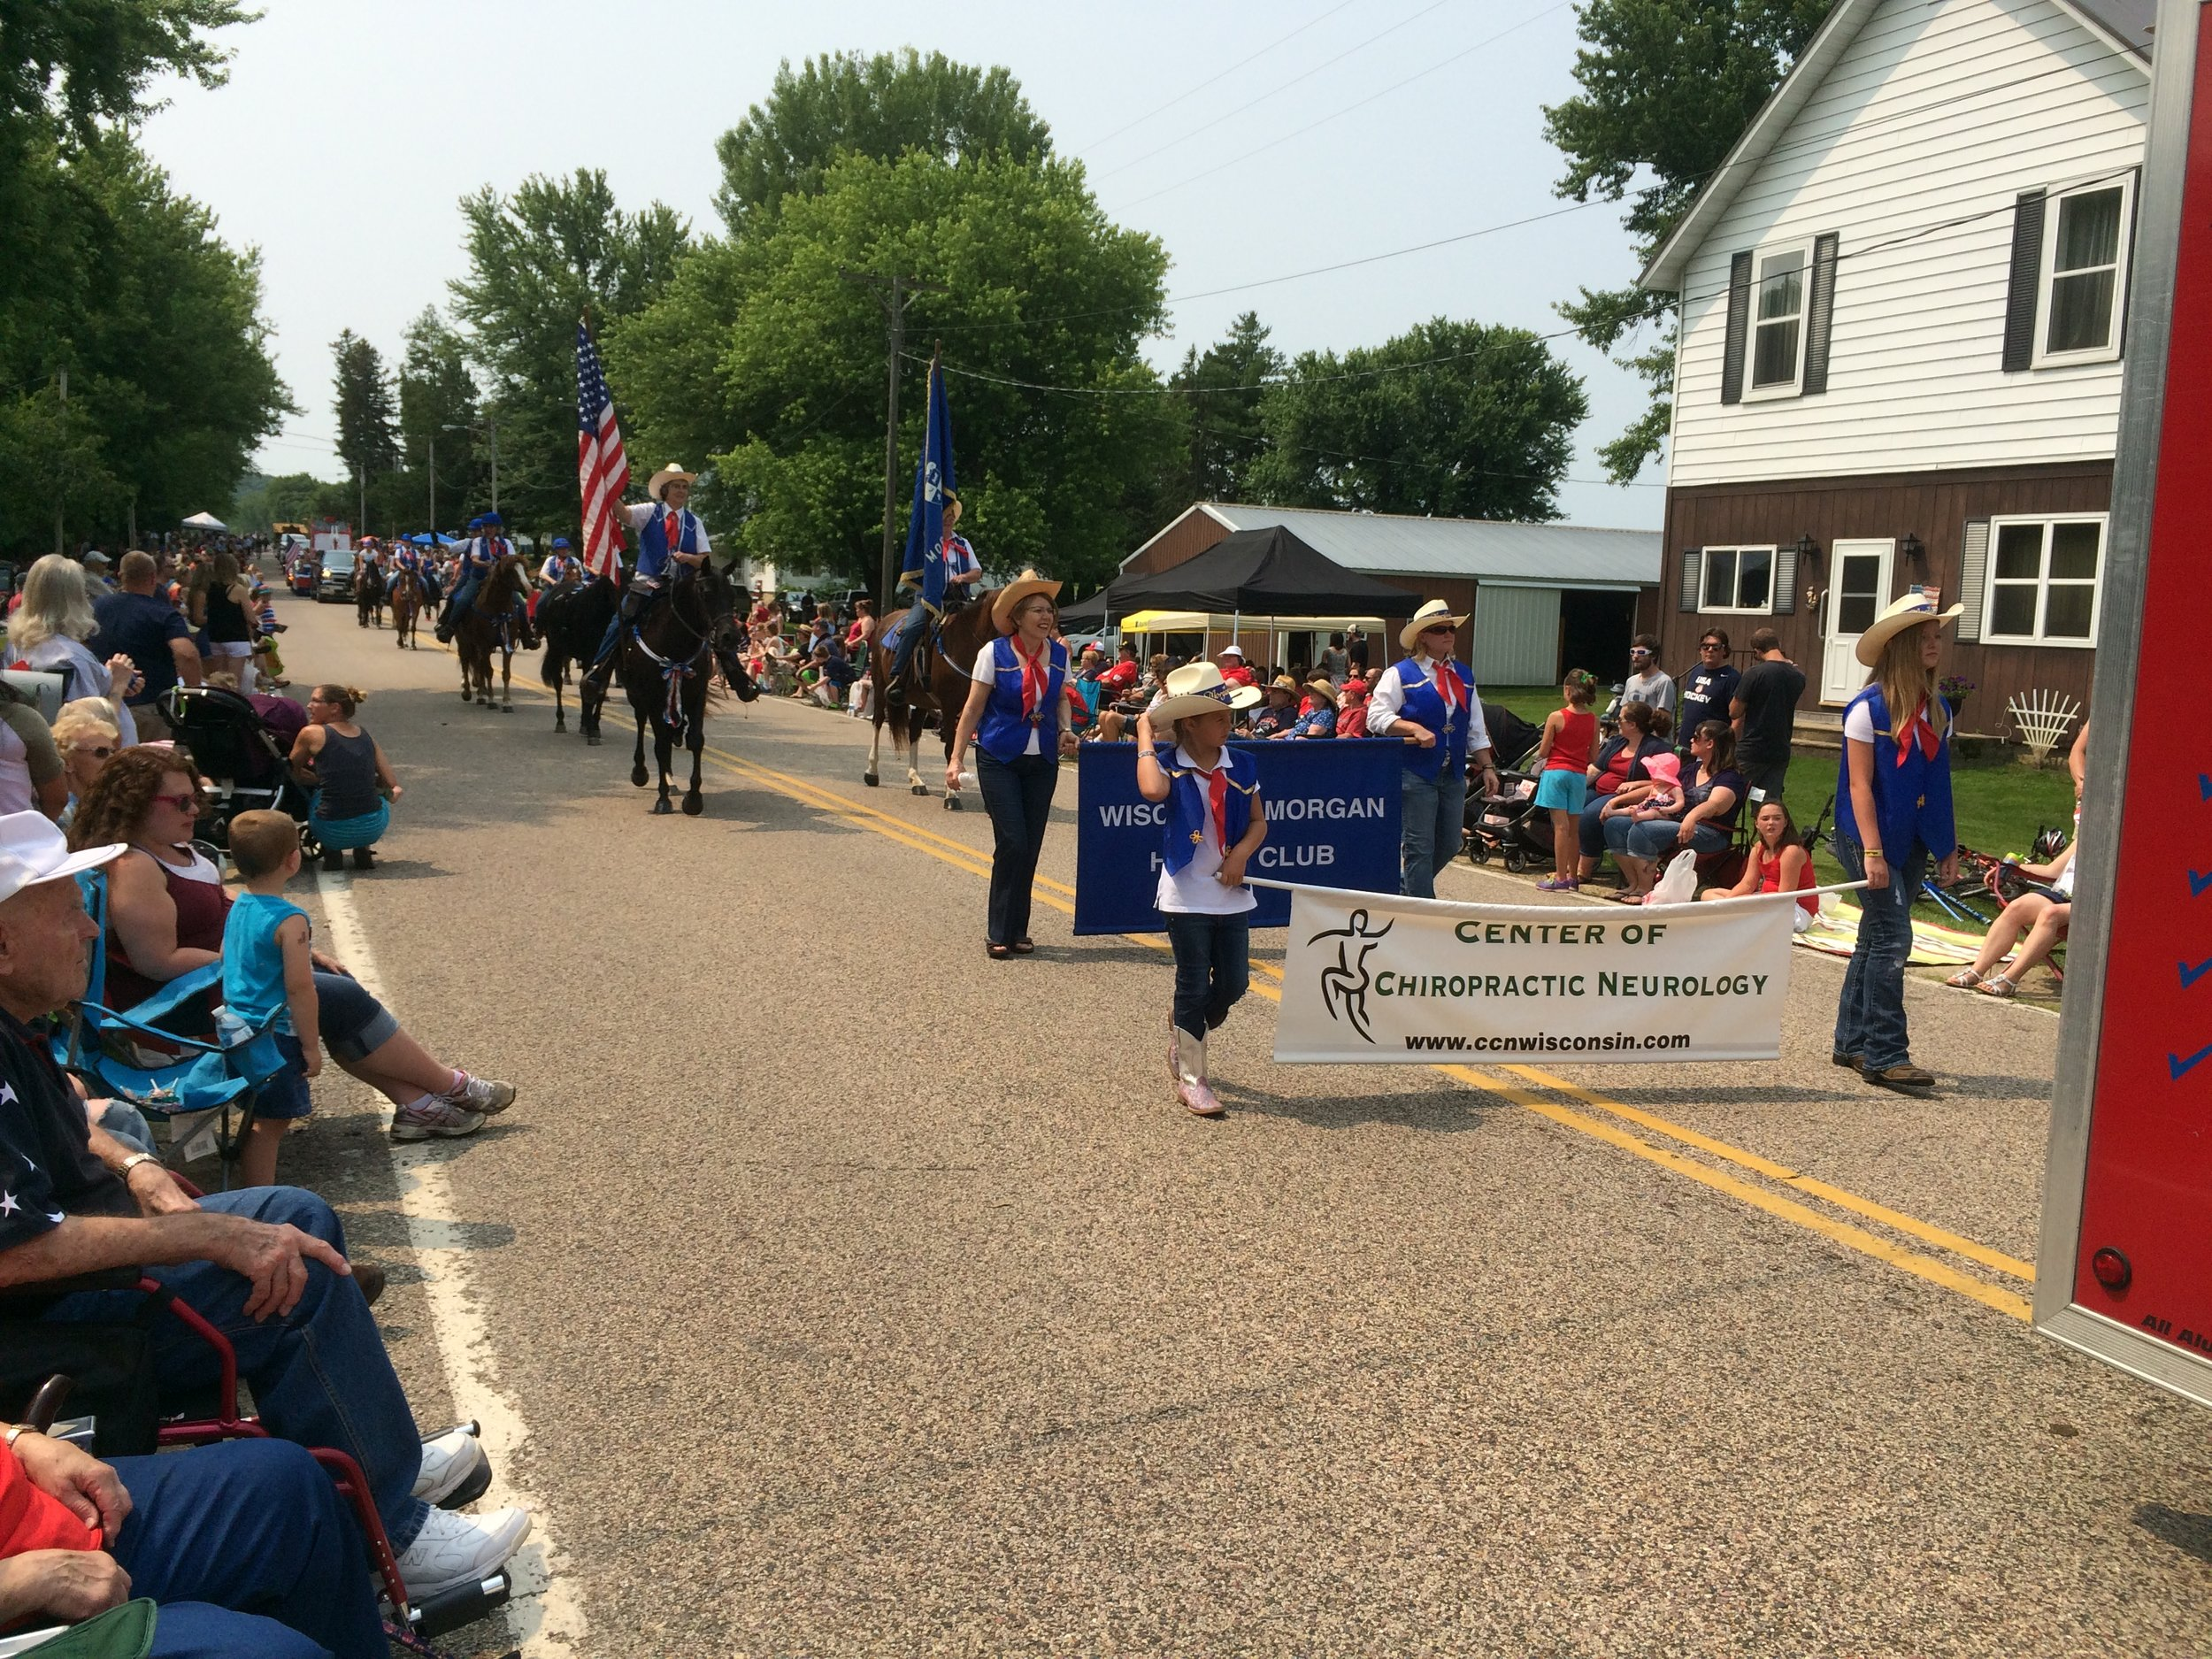 Witwen 4th of July Parade